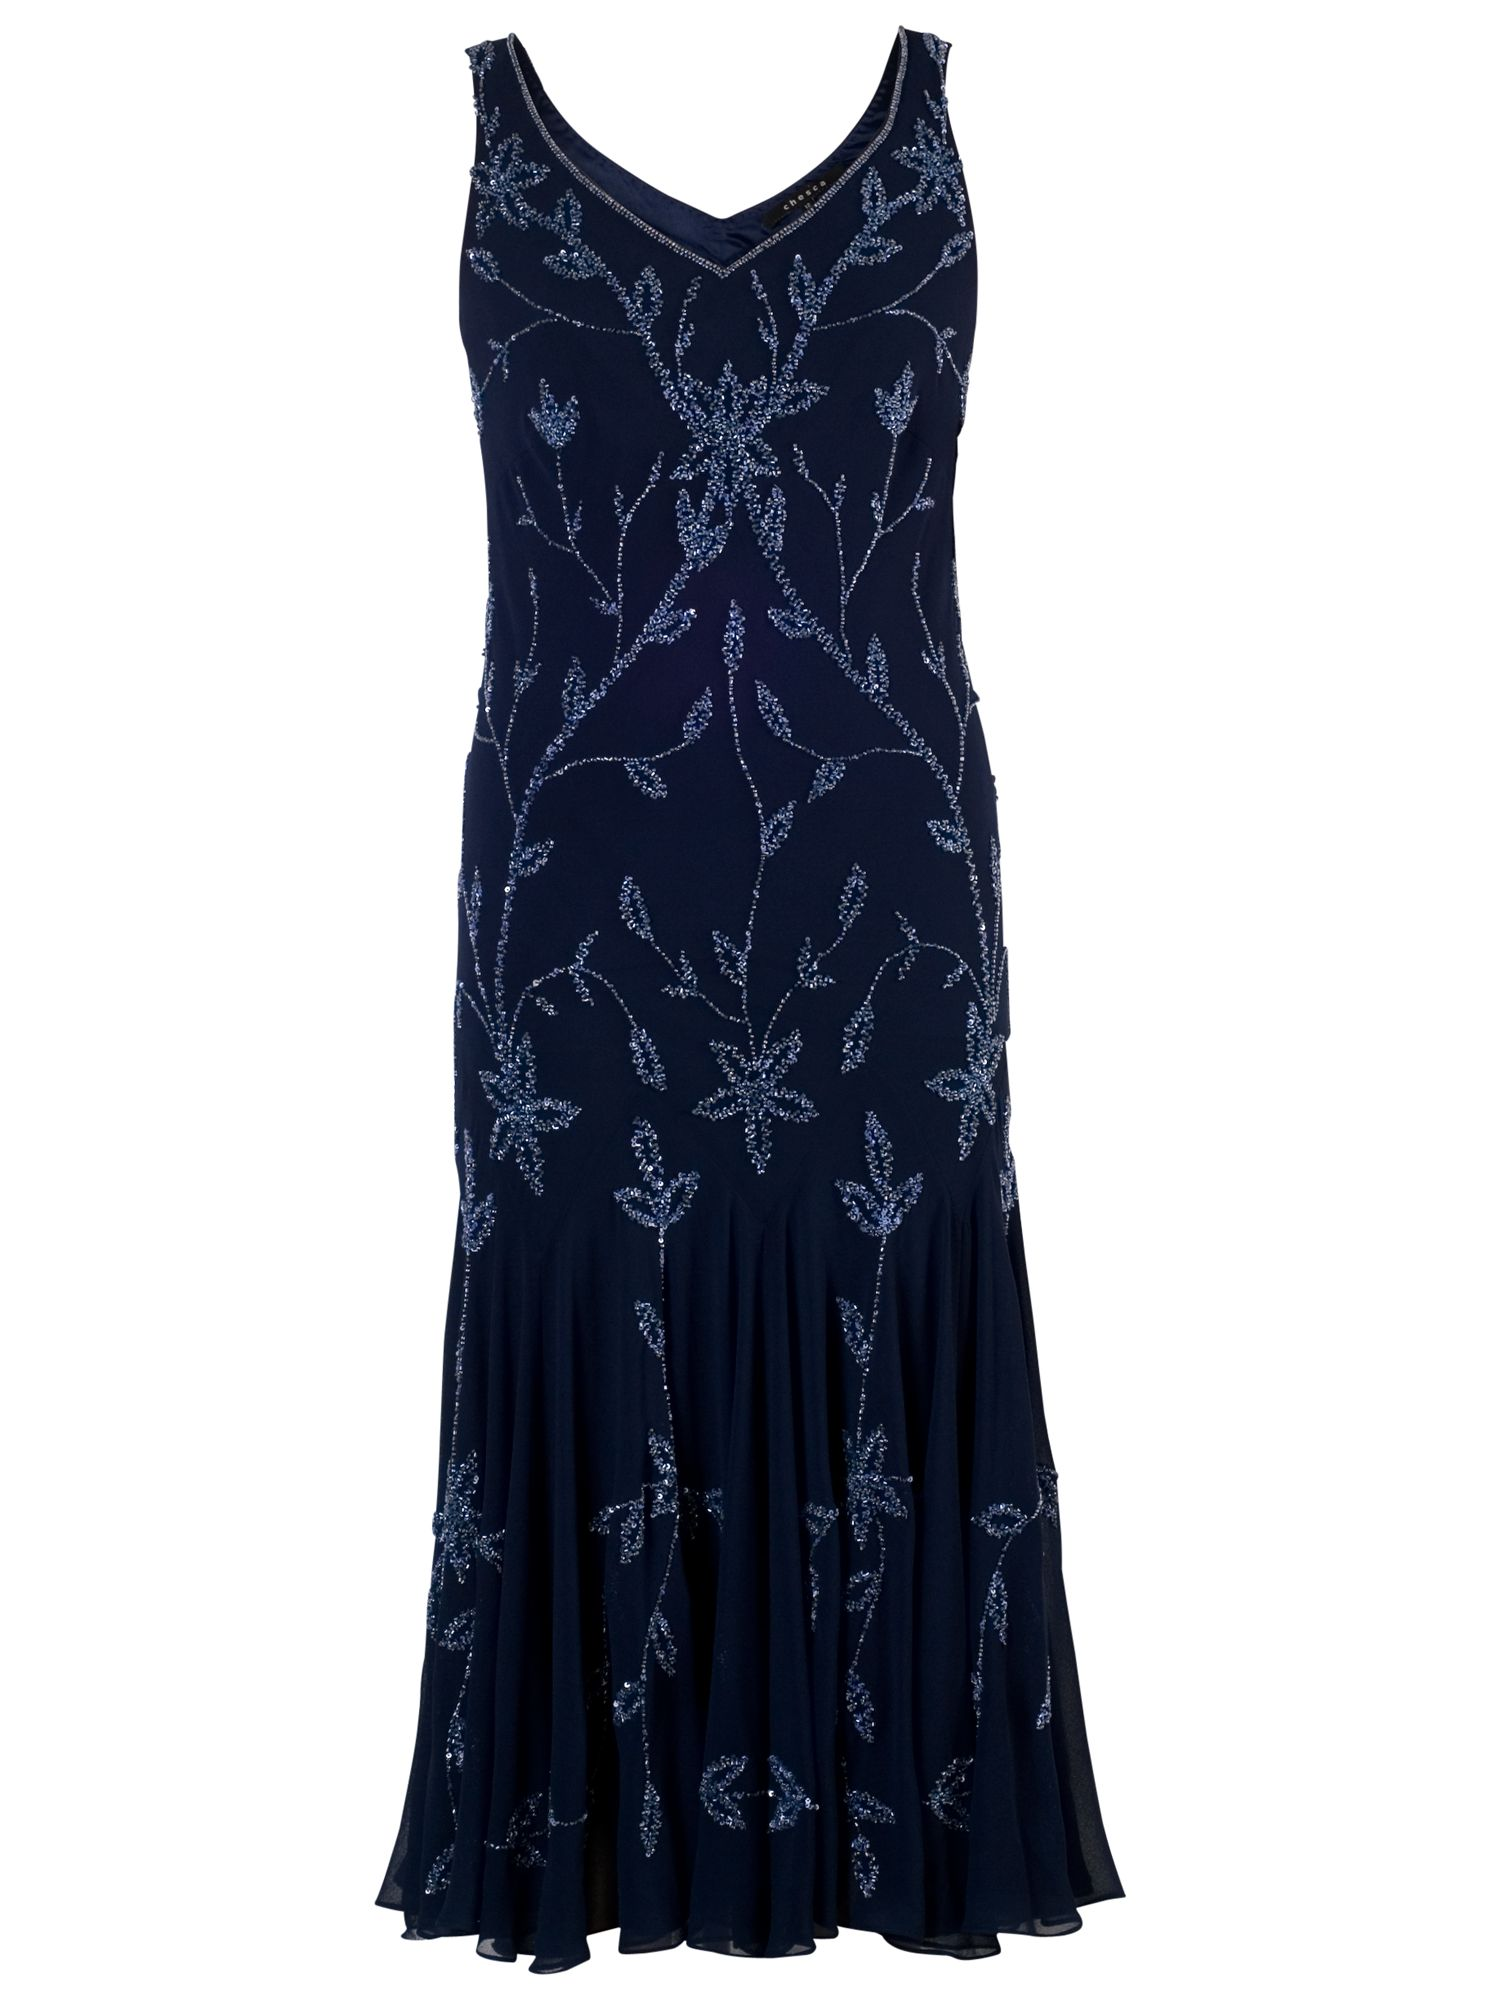 chesca allover bead dress navy/lilac, chesca, allover, bead, dress, navy/lilac, 12|16|18|20|14|24|22, women, plus size, womens dresses, new in clothing, 1931305